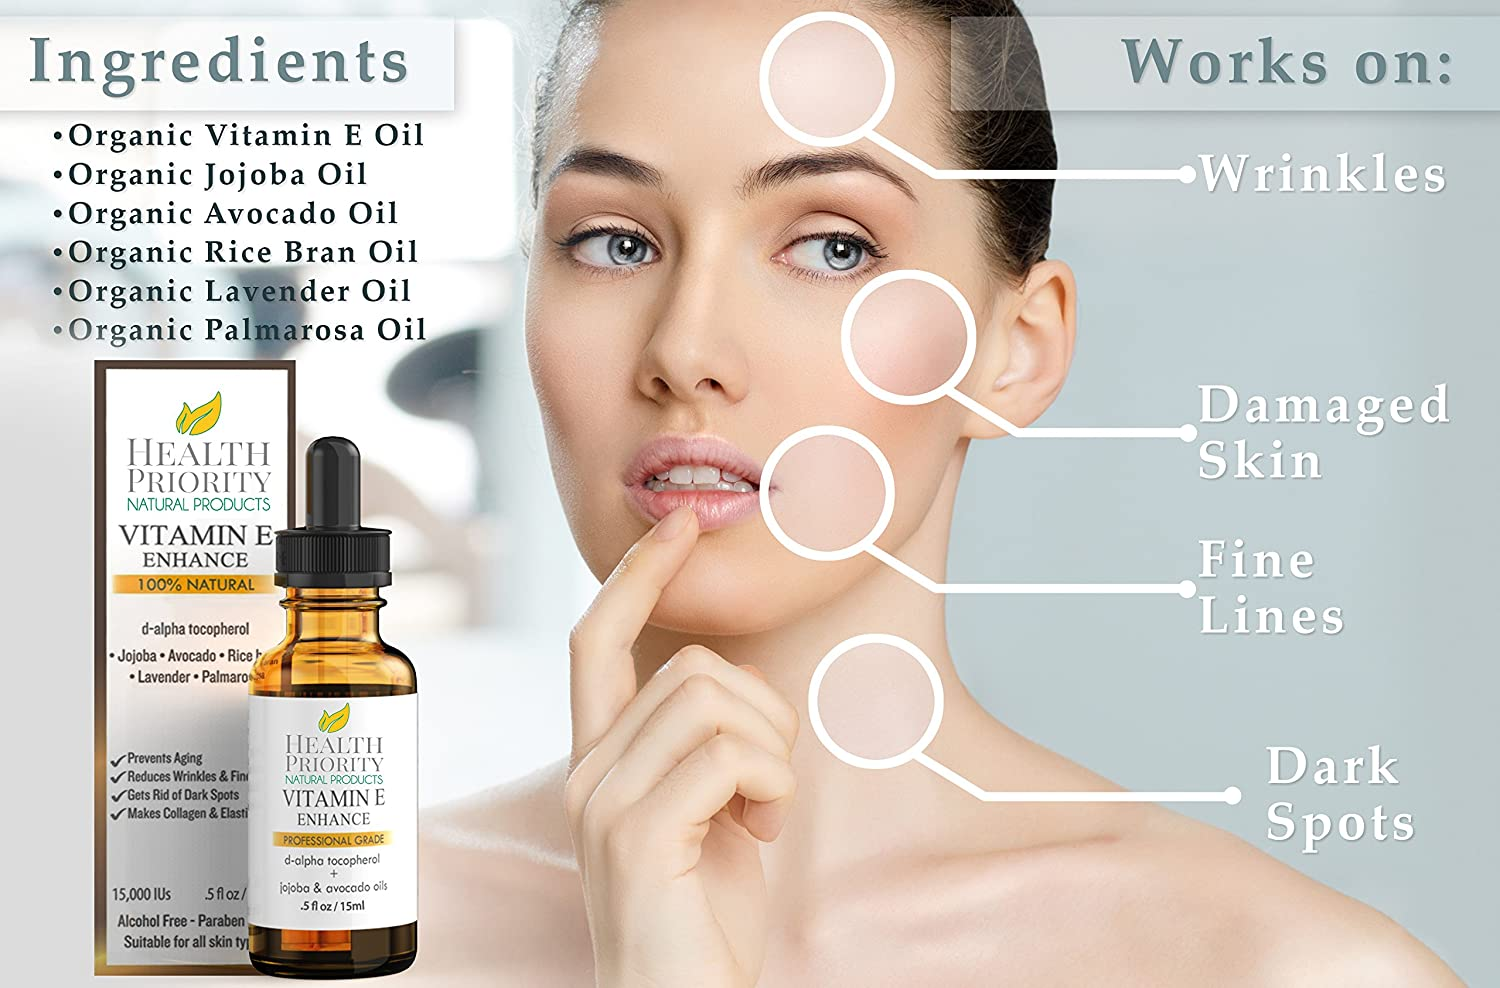 is vitamin e oil good for face